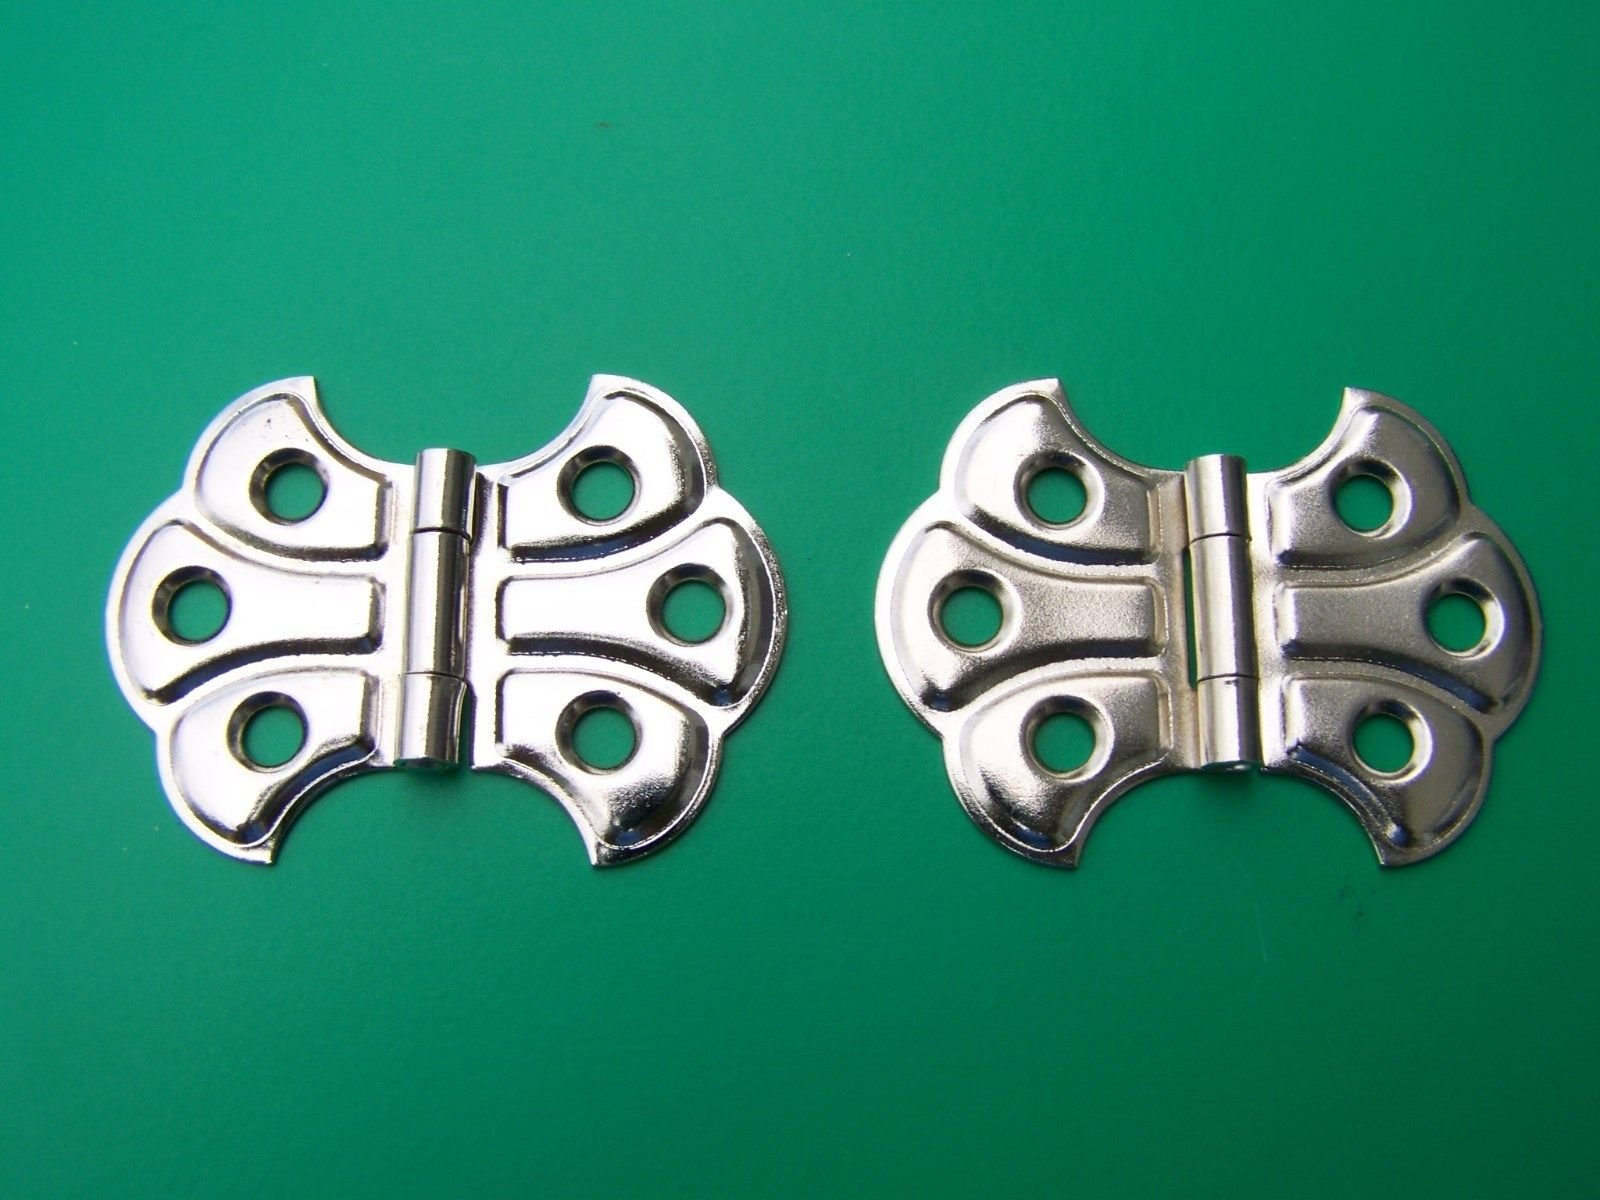 USA Premium Store 4 FINISHES BUTTERFLY HINGE FULL SURFACE FLUSH HINGE SOLD IN PAIRS 2'' W X1 7/16''H (Polished Nickel)